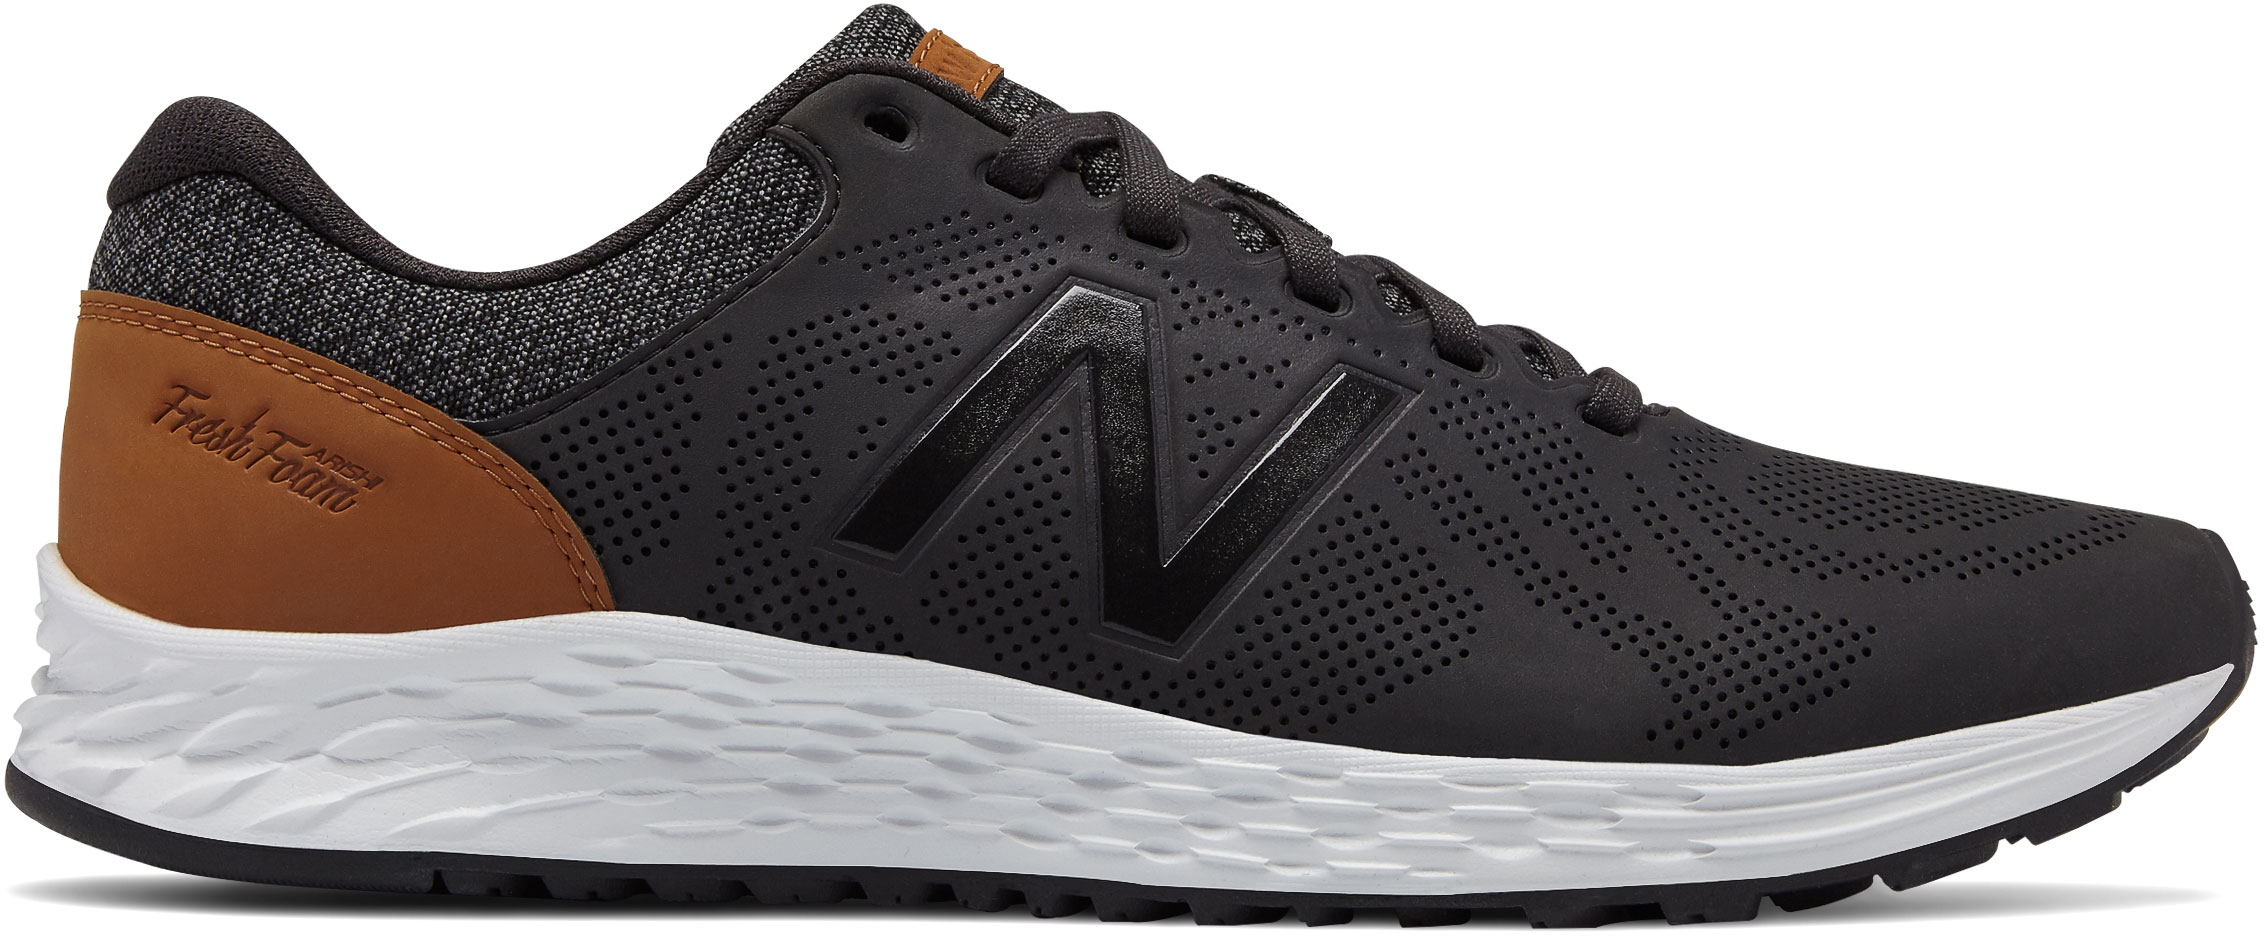 the latest 55981 080c5 ... New Balance Men s Fresh Foam Arishi MARISPP1 Phantom ...